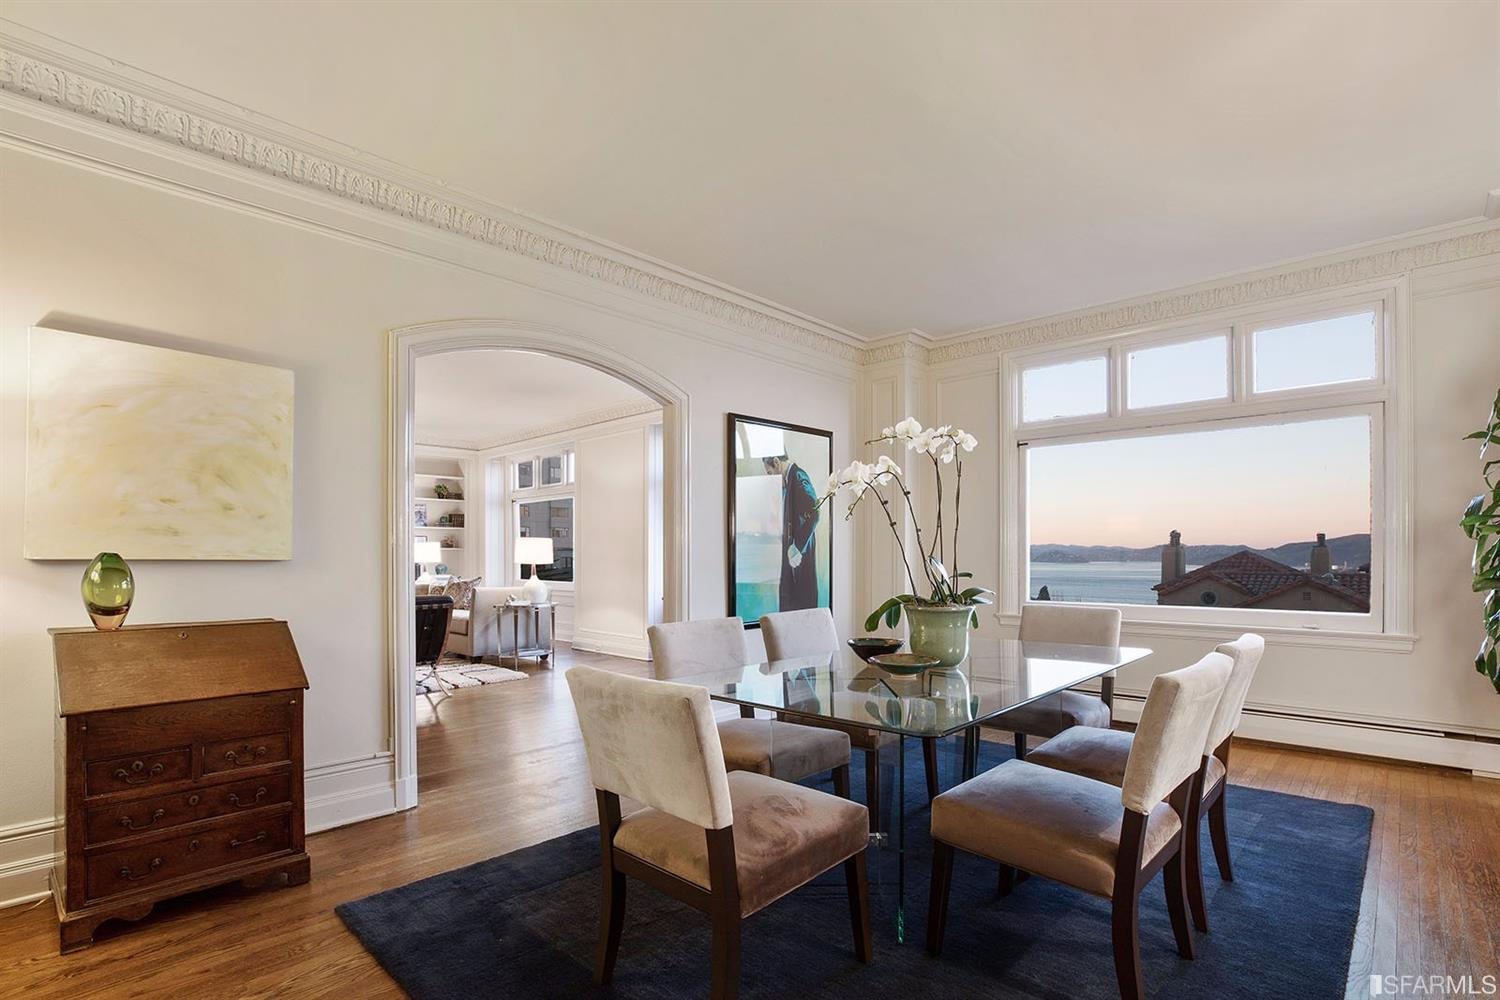 Additional photo for property listing at 947 Green Street  SAN FRANCISCO, CALIFORNIA 94108